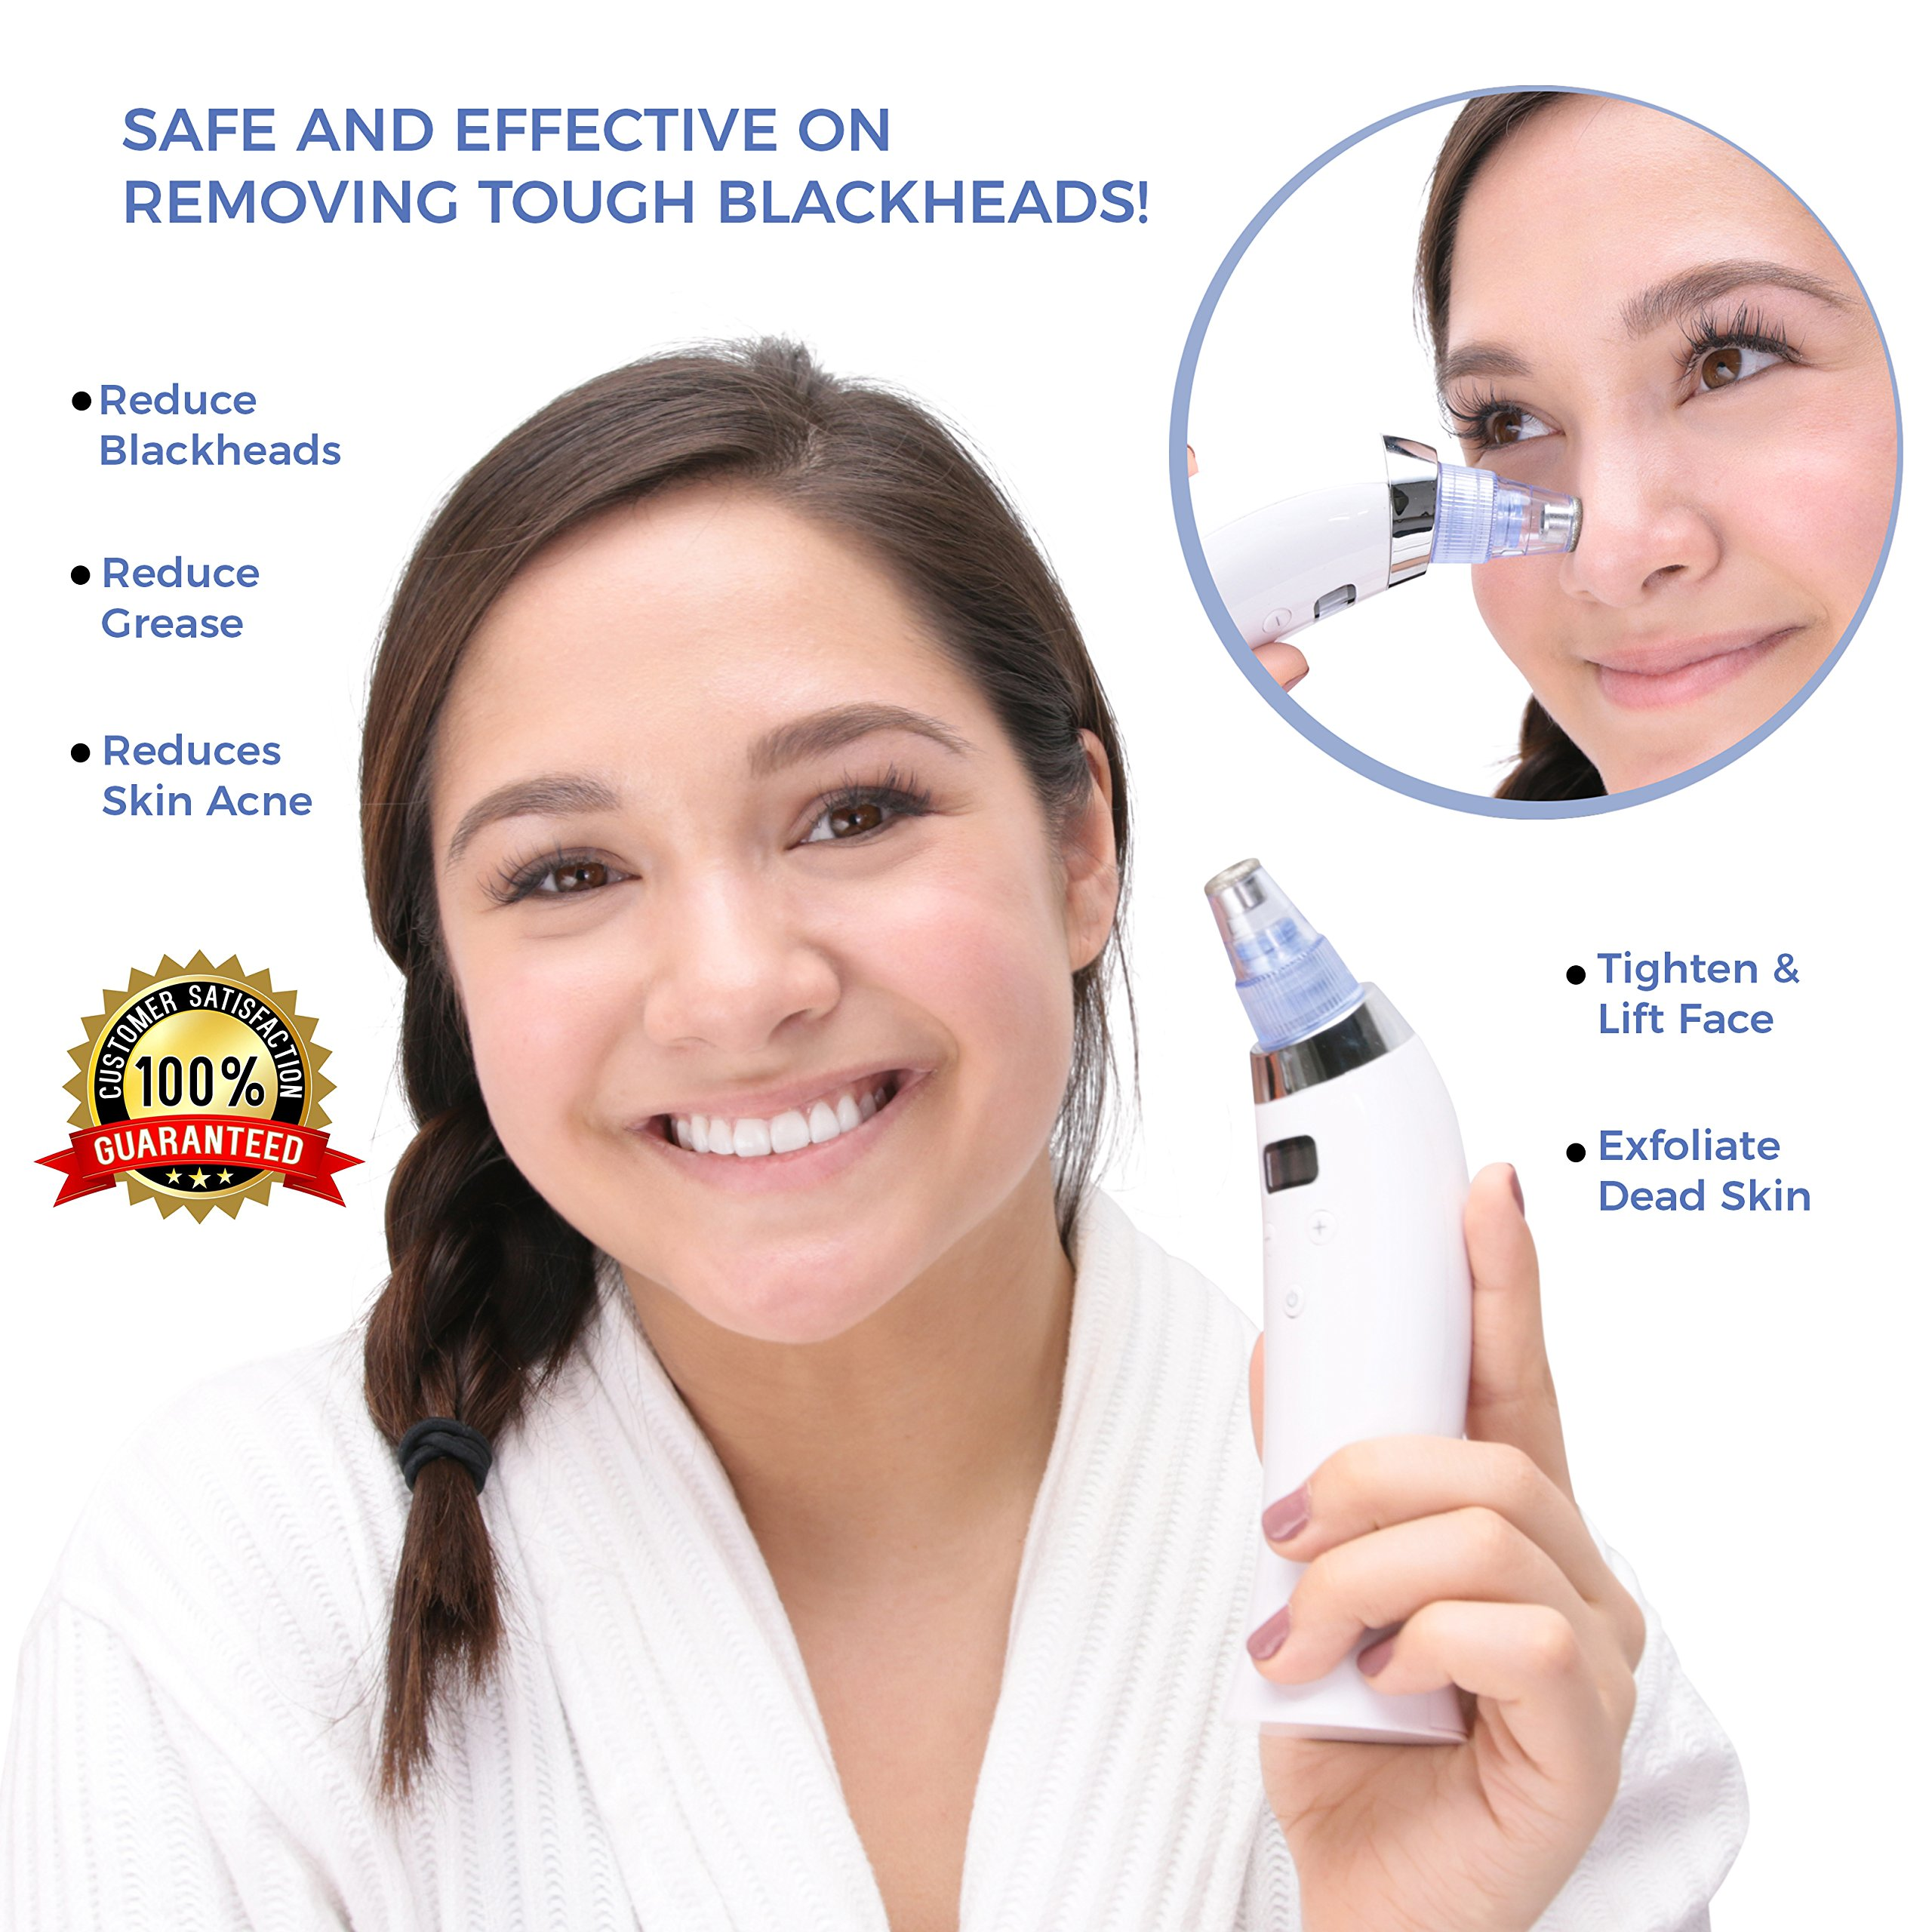 Blackhead Remover Vacuum Suction Pore Cleaner   Electric Blackheads Acne Skin Cleanser and Blackhead Tool   Comedone Kit Microdermabrasion LED Device   Facial Treatment Women Men